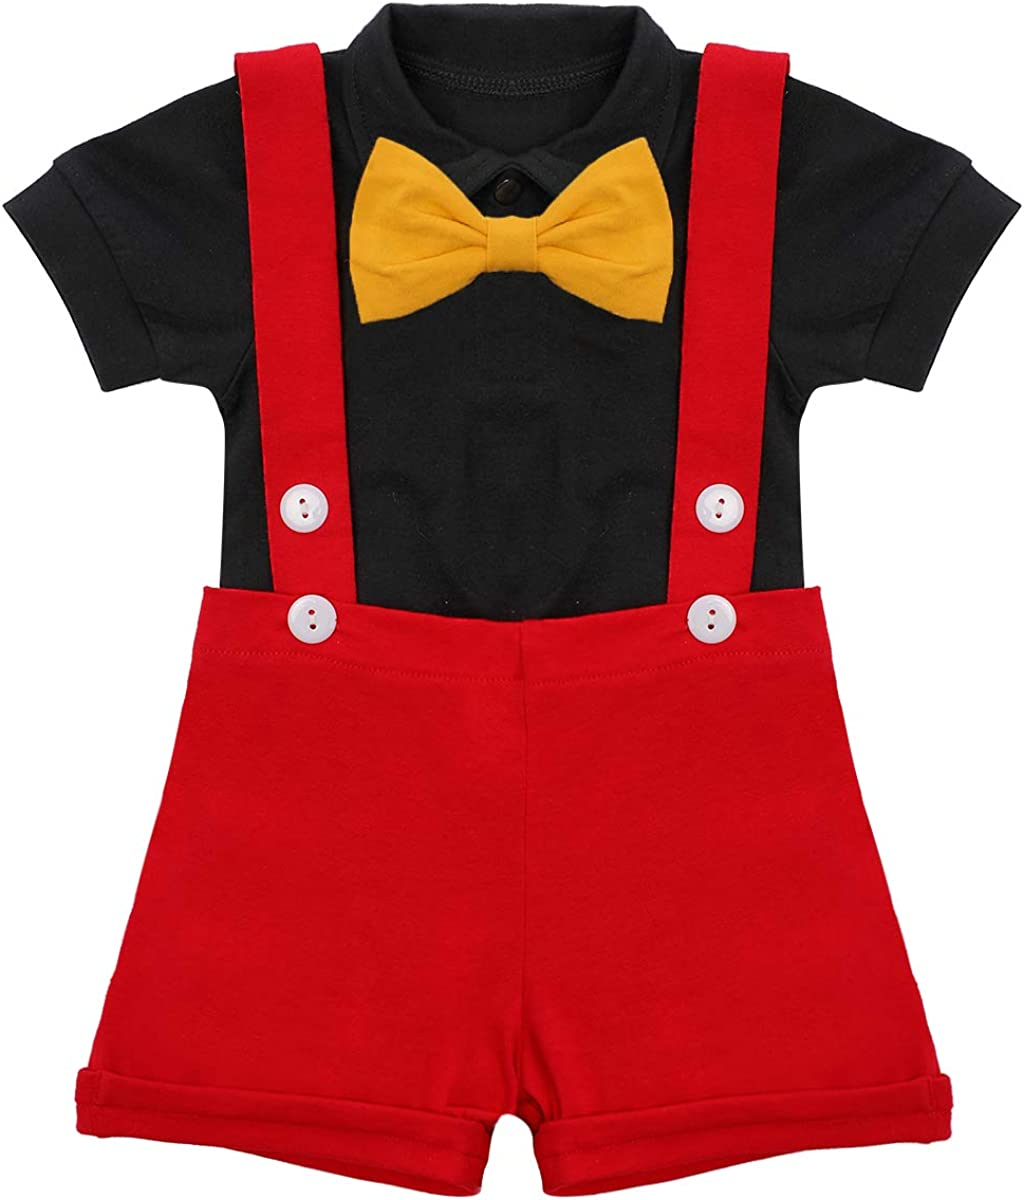 Baby Boys Mouse Costume Cosplay Bowtie Overseas parallel import regular item Max 89% OFF Suspenders Shorts Romper